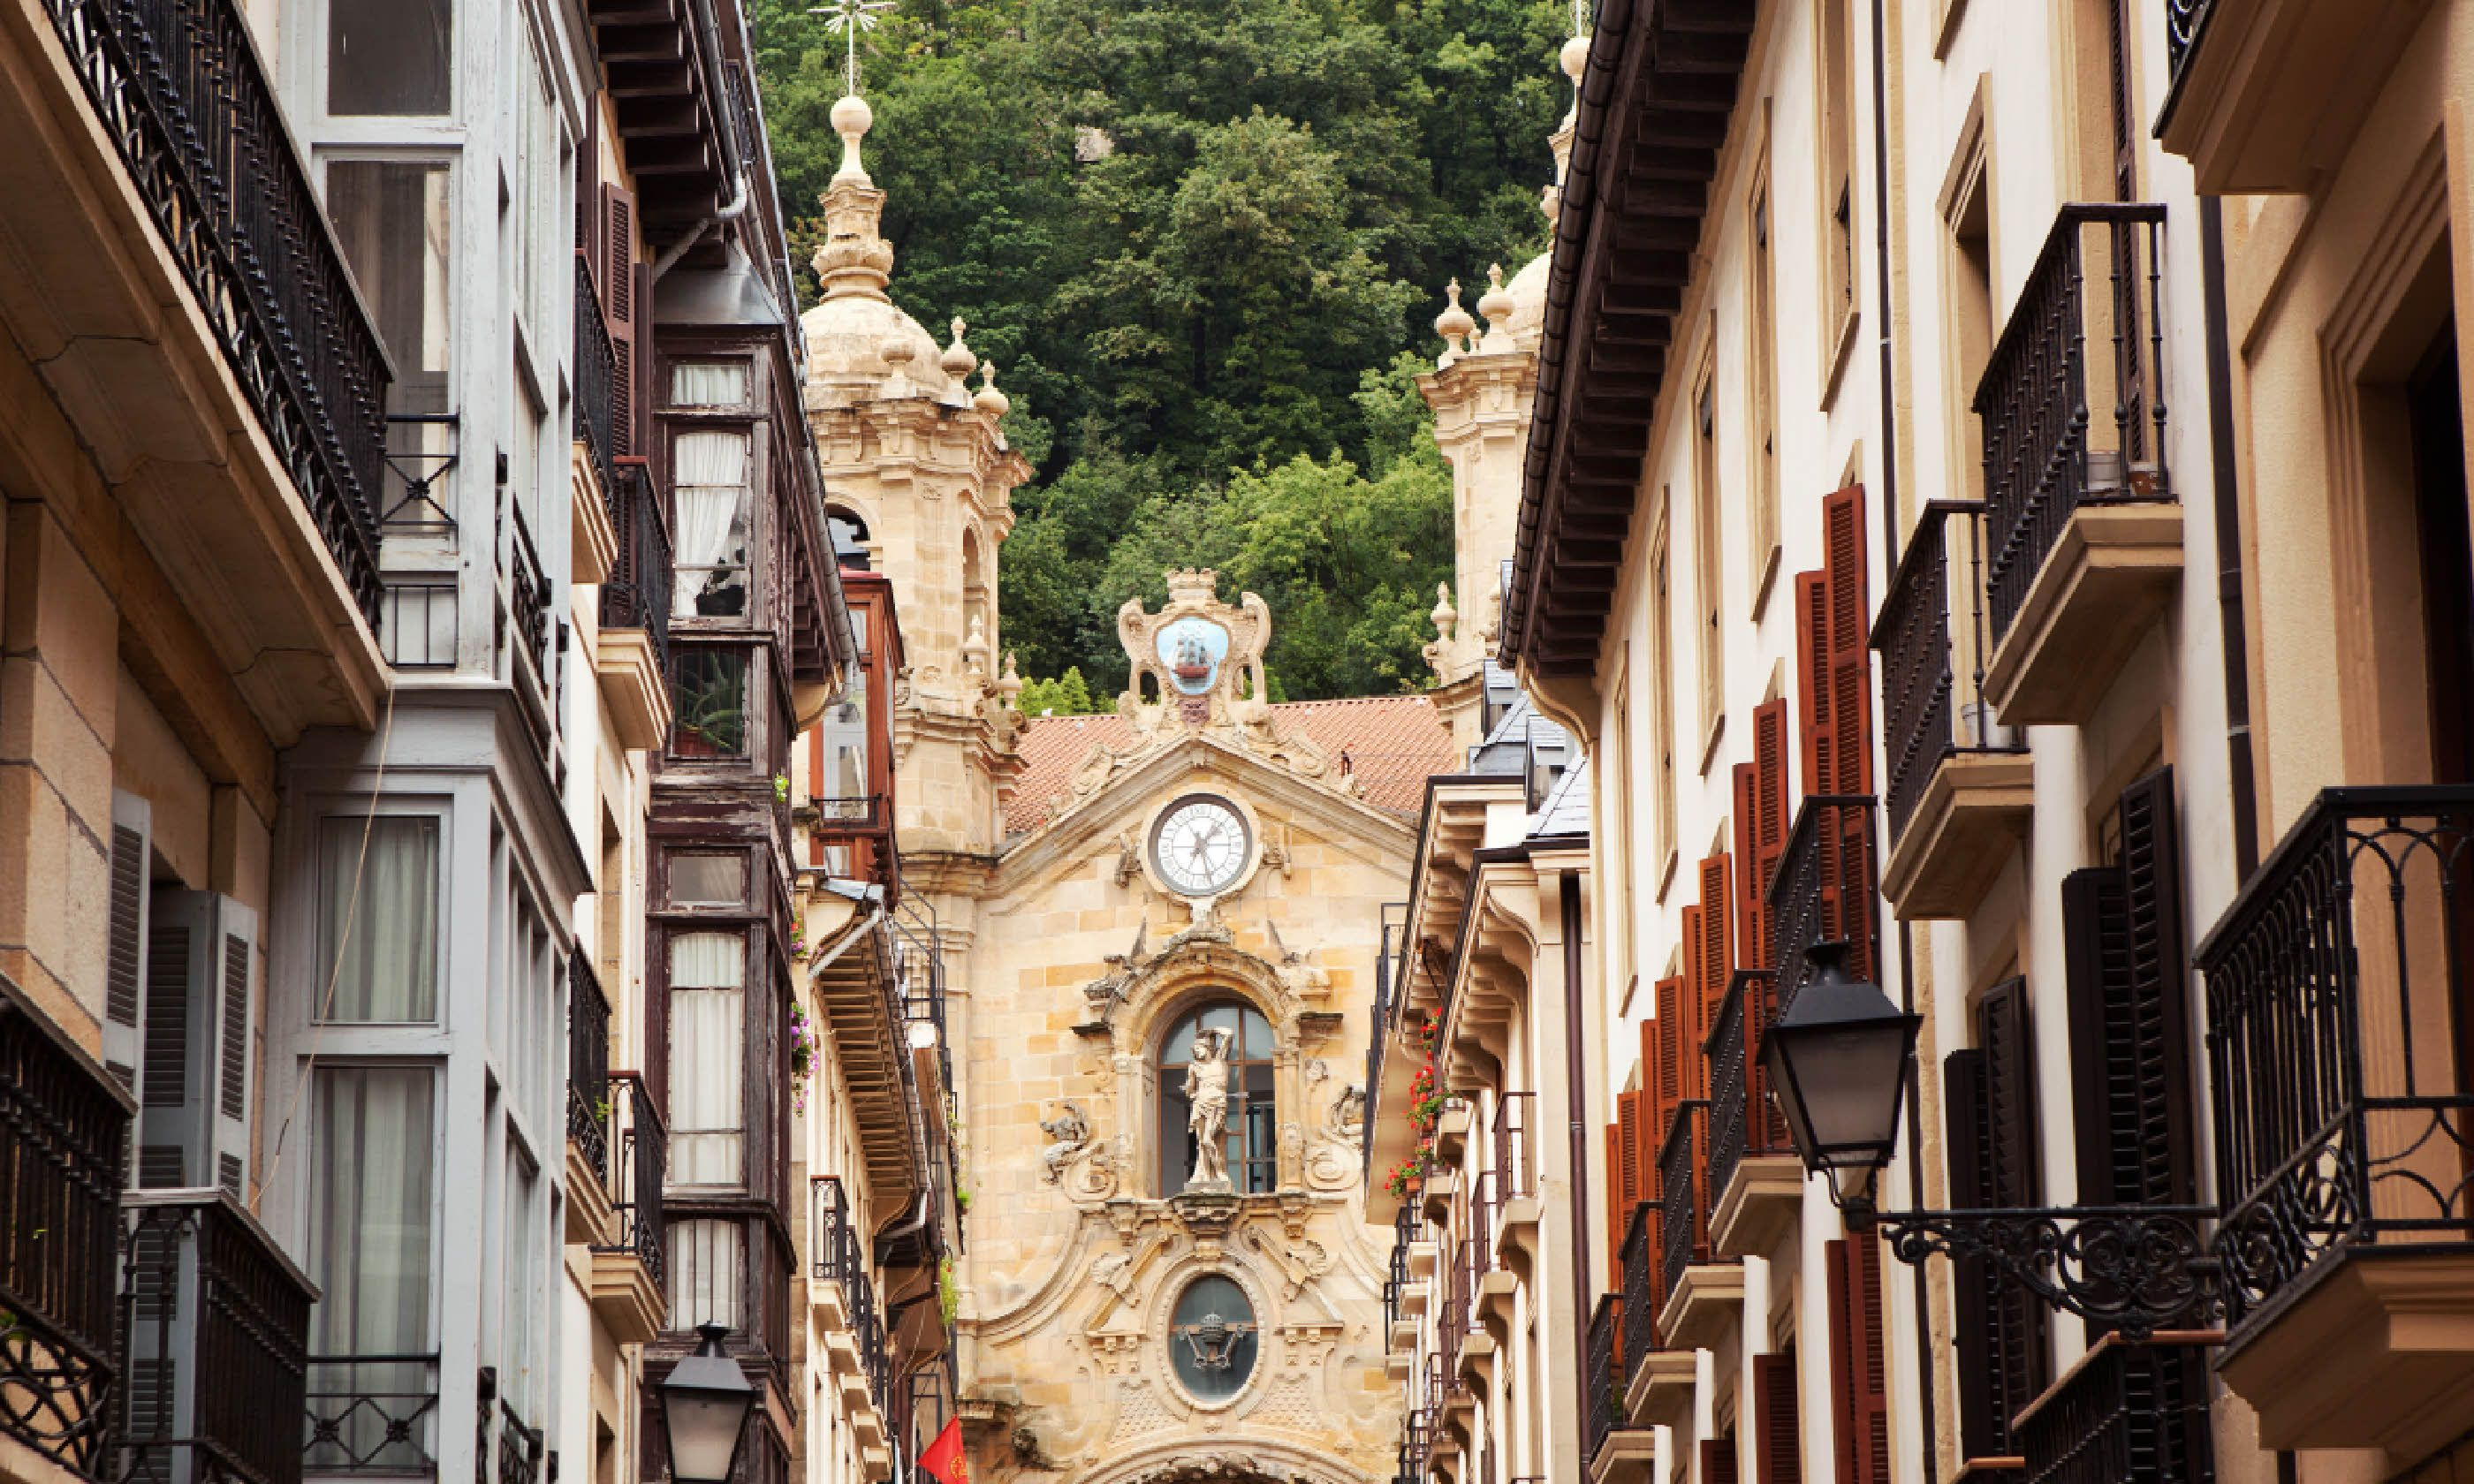 The church in the old town of San Sebastian, Spain (Shutterstock)